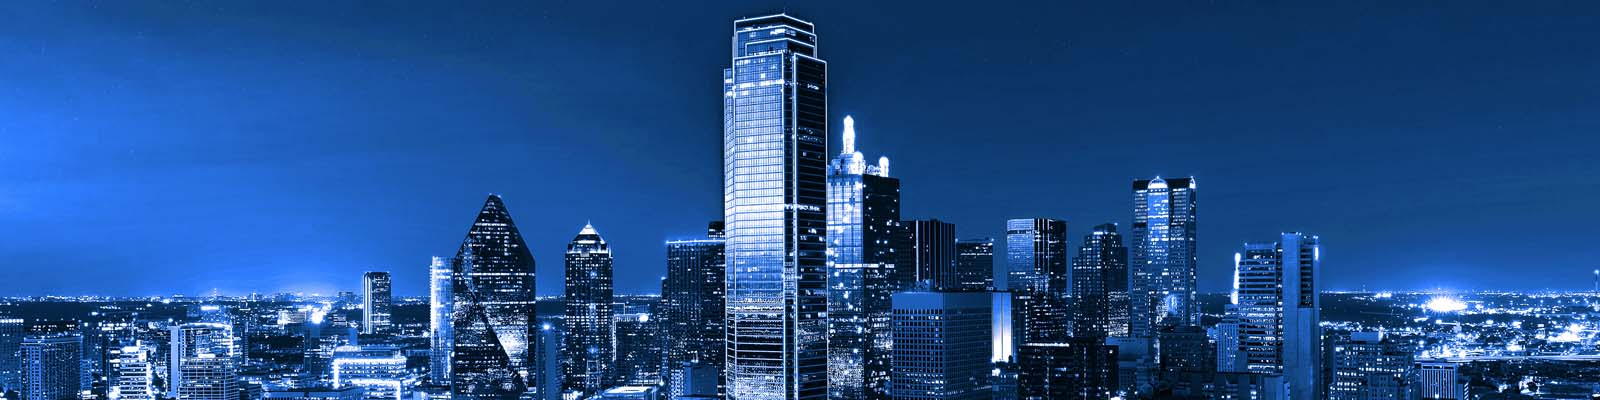 ASTA-USA provides professional and certified translation services in Dallas, Texas. Contact us now.